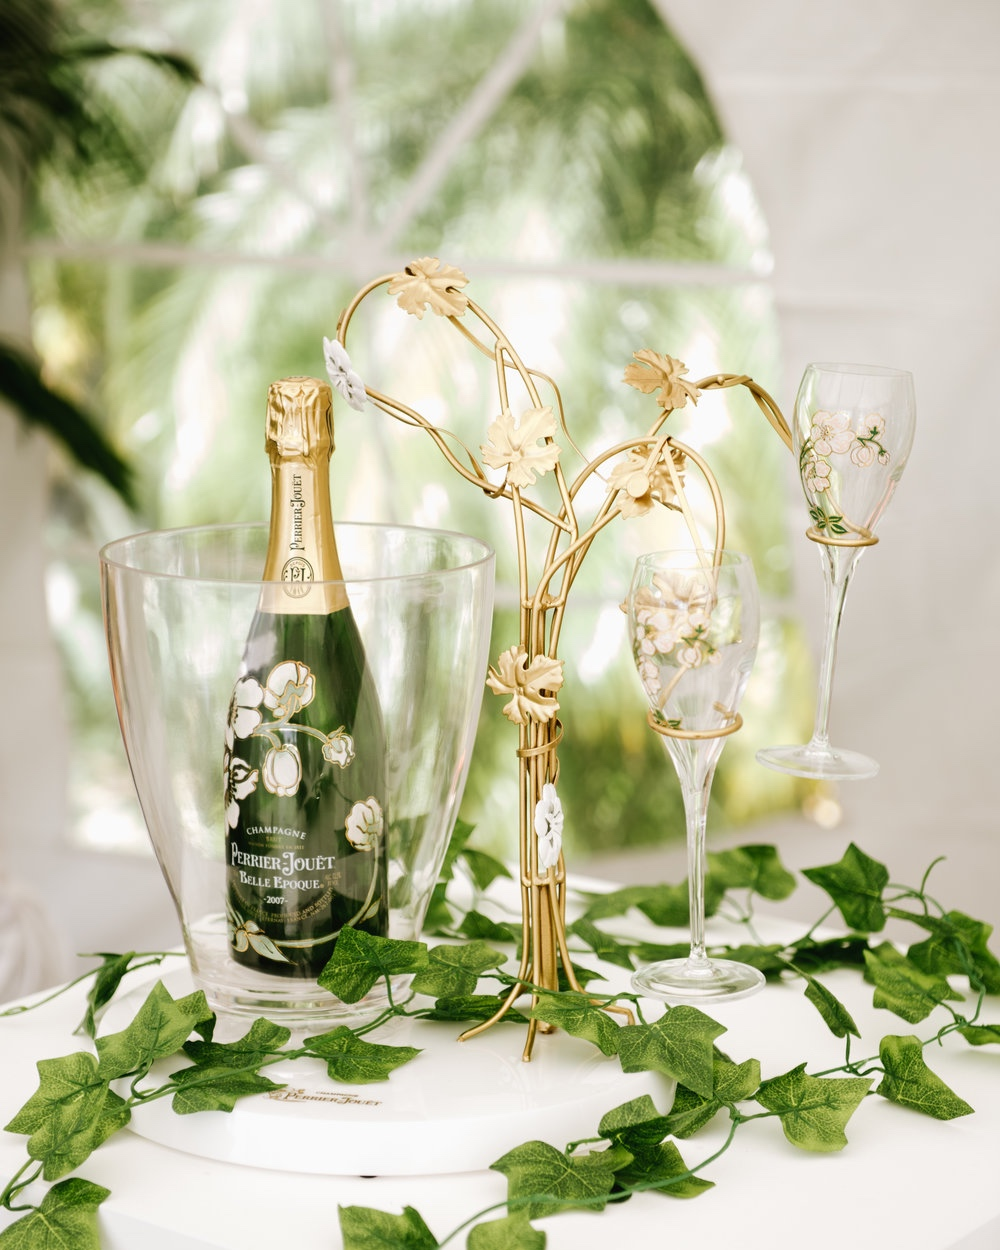 Perrier Jouet Champagne - Have you seen some of the photos that Perrier Jouet, founded in 1811, commissioned me to shoot of their VIP tent yet?